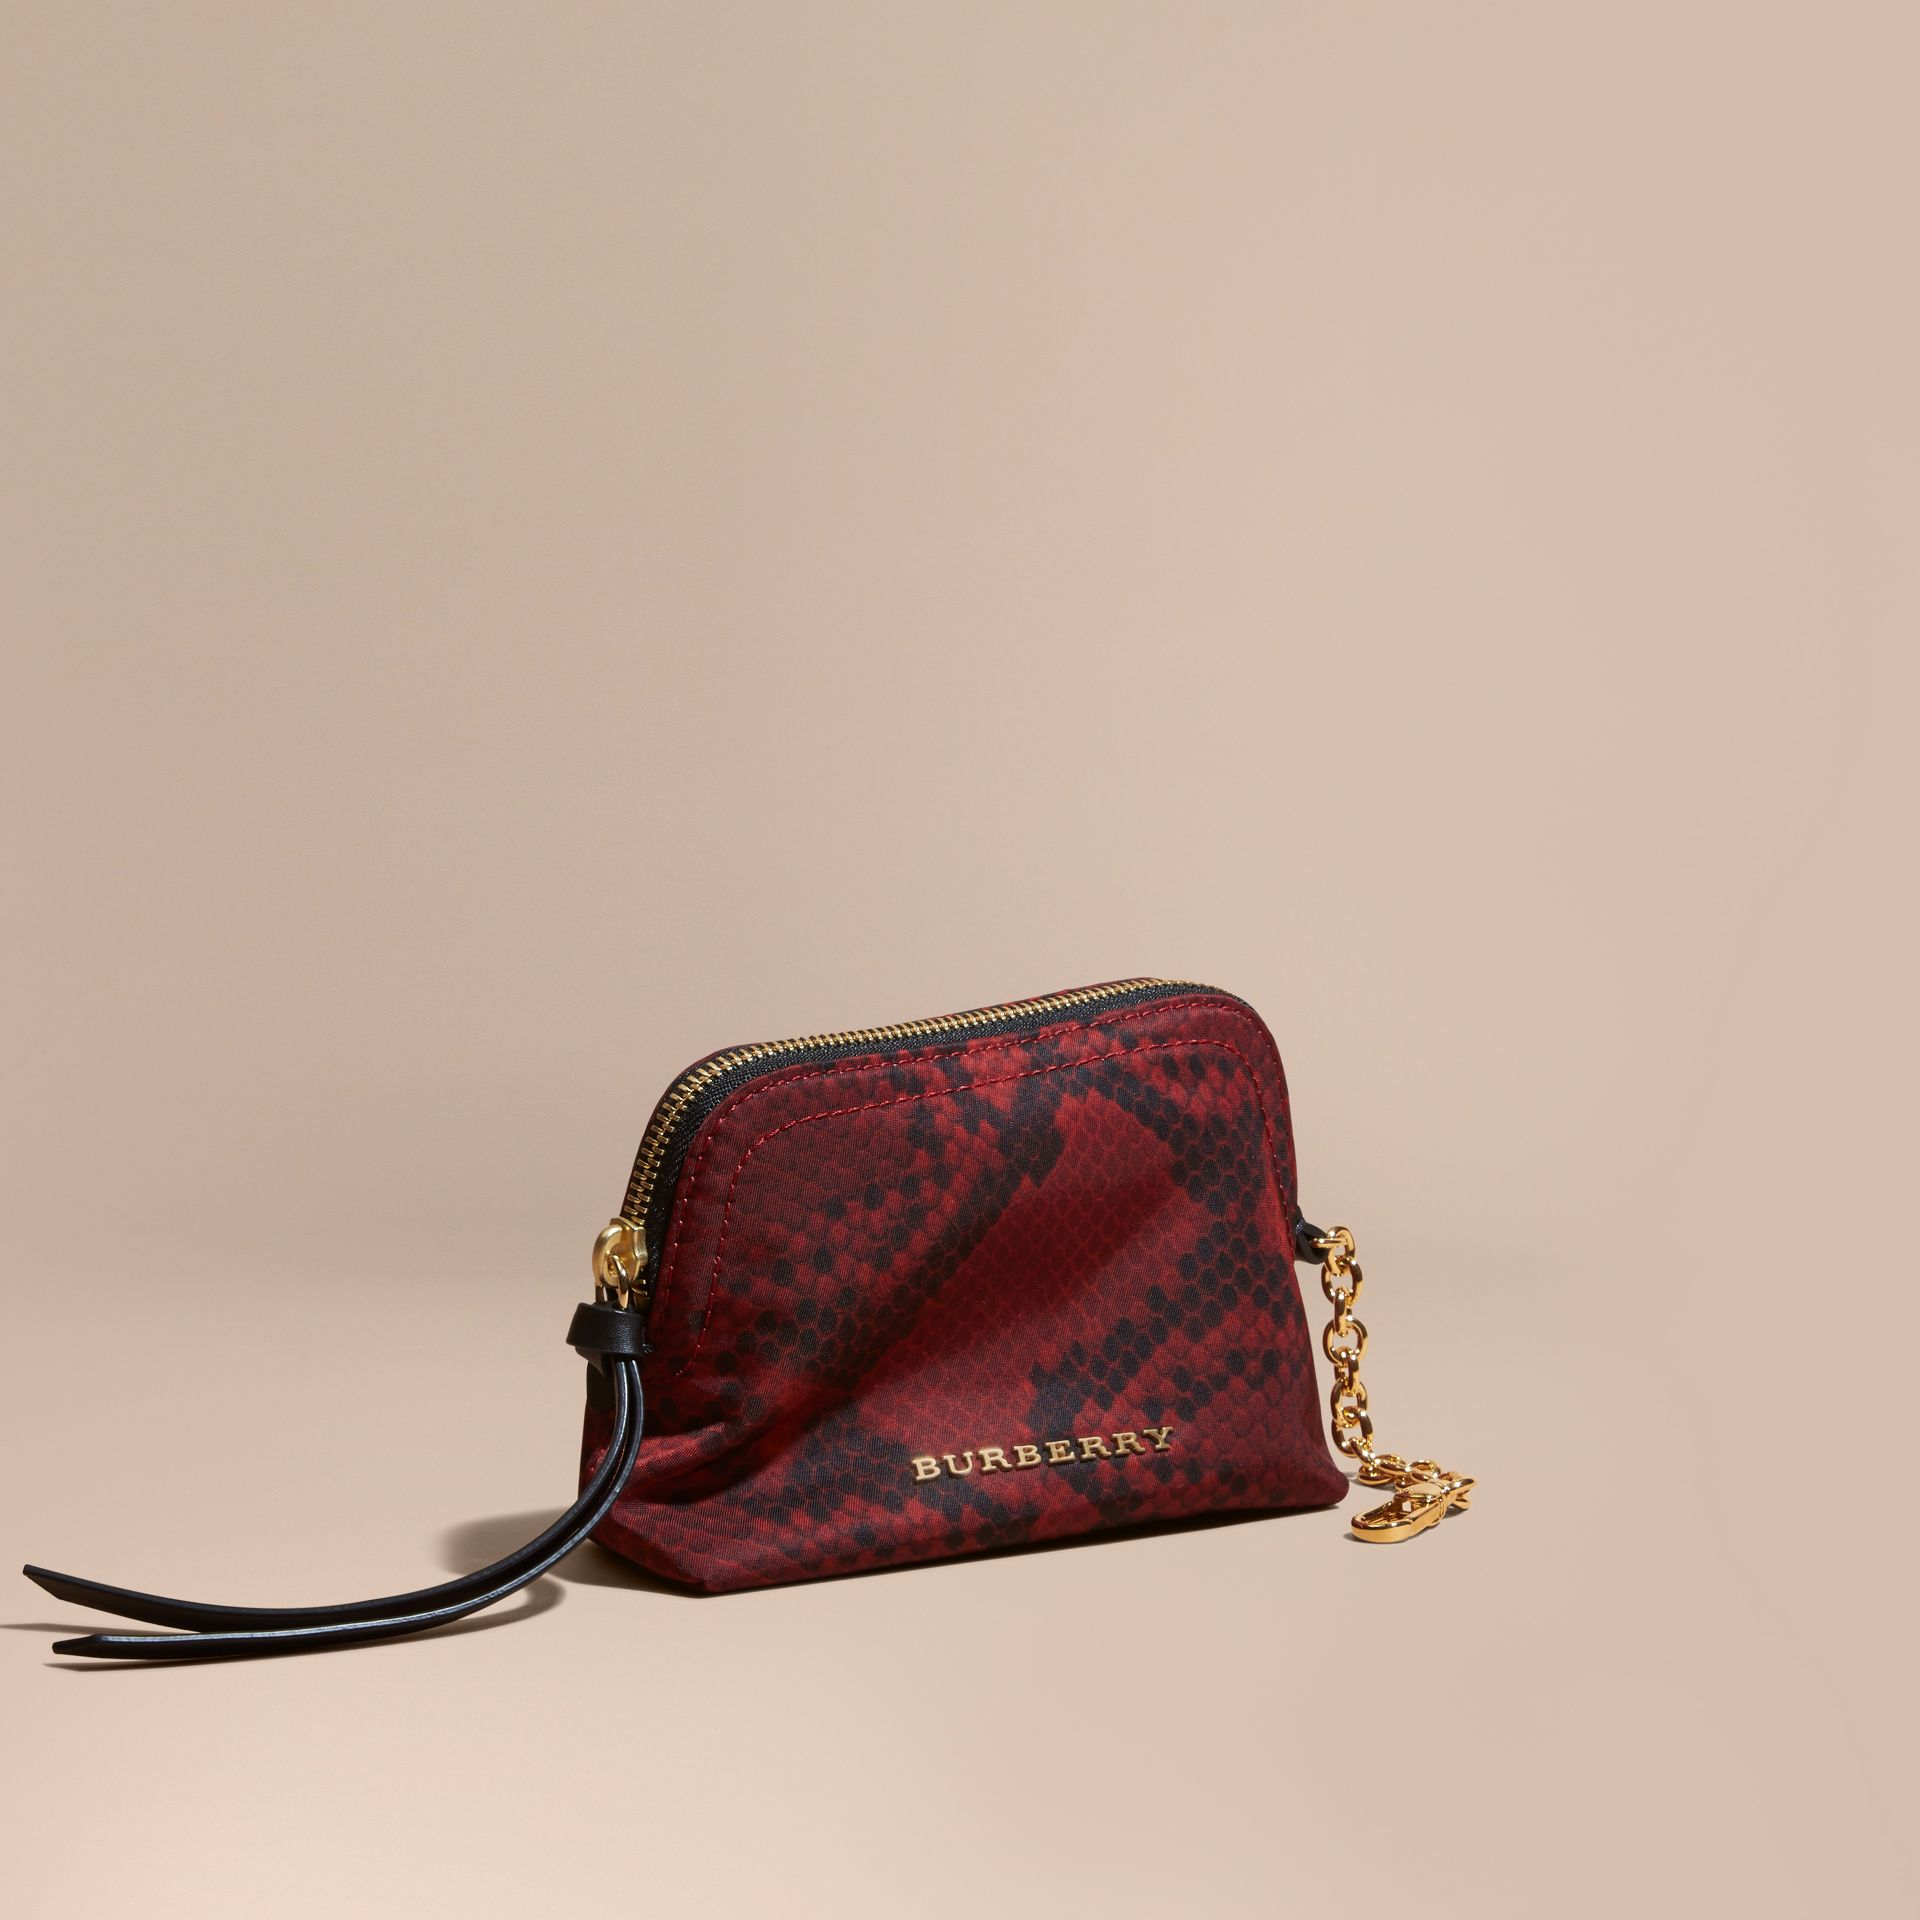 Burgundy red Small Zip-top Python-print Technical Nylon Pouch Burgundy Red - gallery image 1